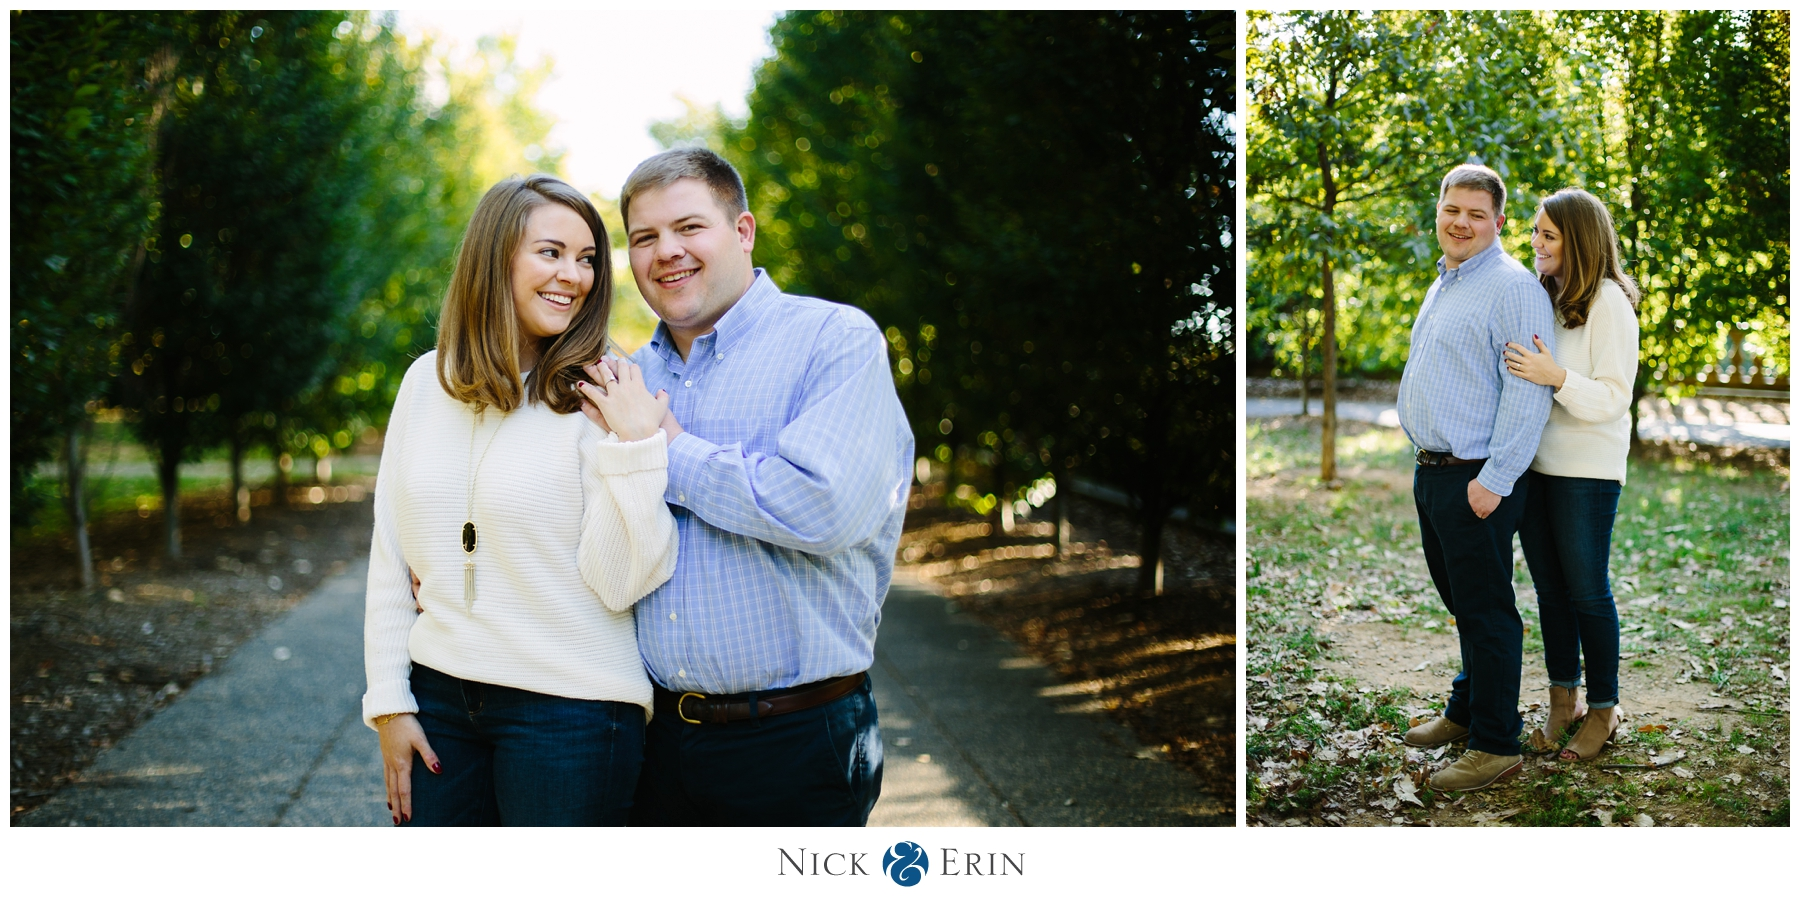 donner_photography_washington-dc-engagement_rachel-cap_0002